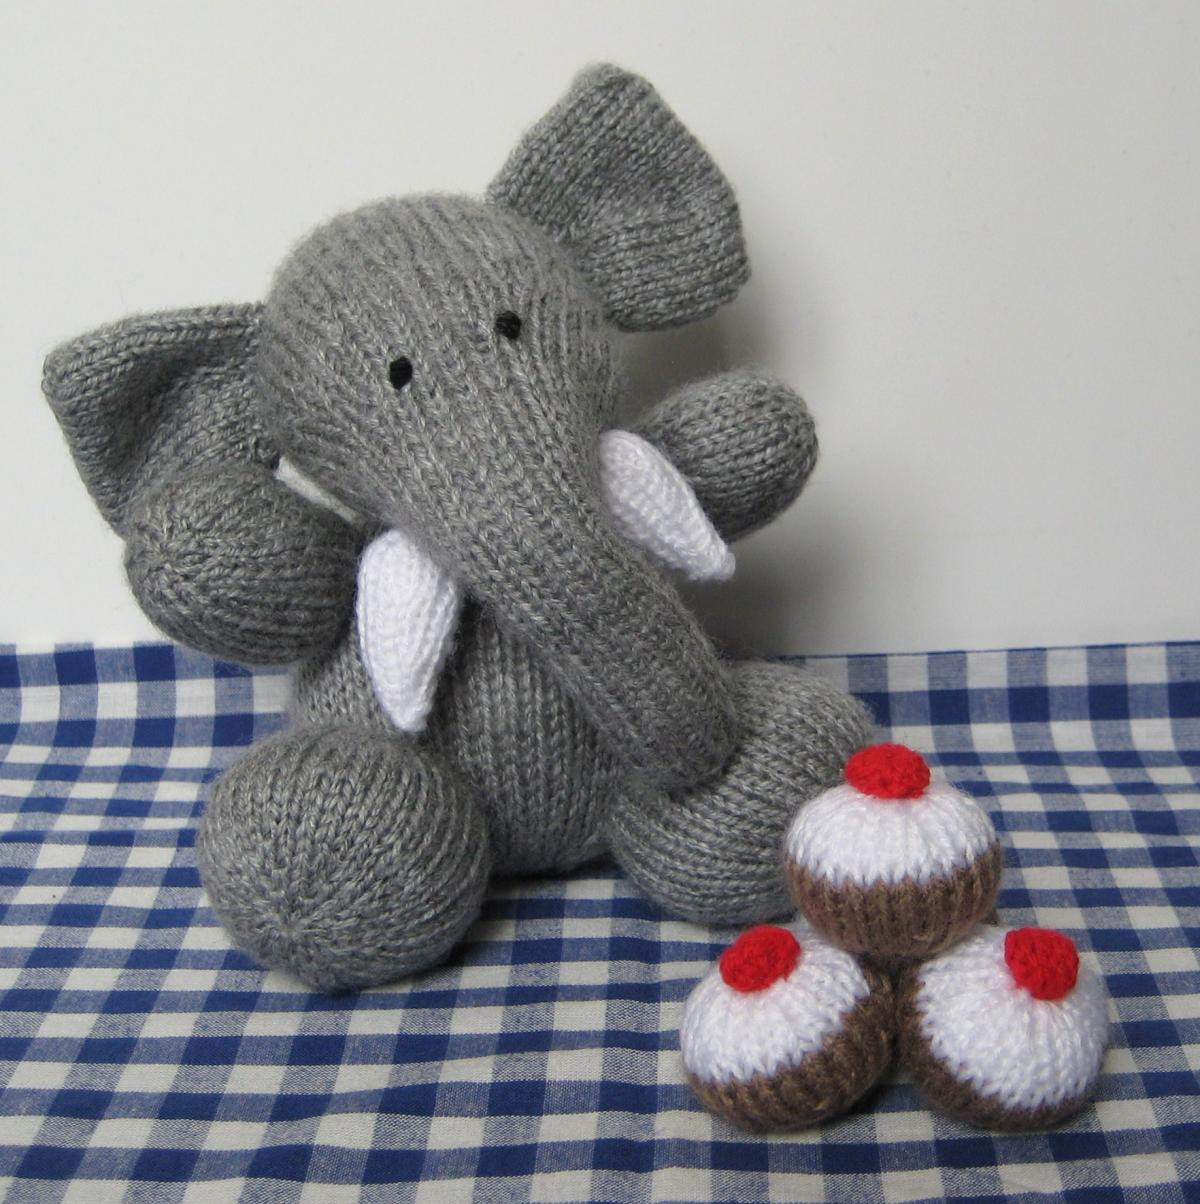 Knitting Patterns toys Unique Bloomsbury Elephant toy Knitting Pattern On Luulla Of Amazing 41 Models Knitting Patterns toys